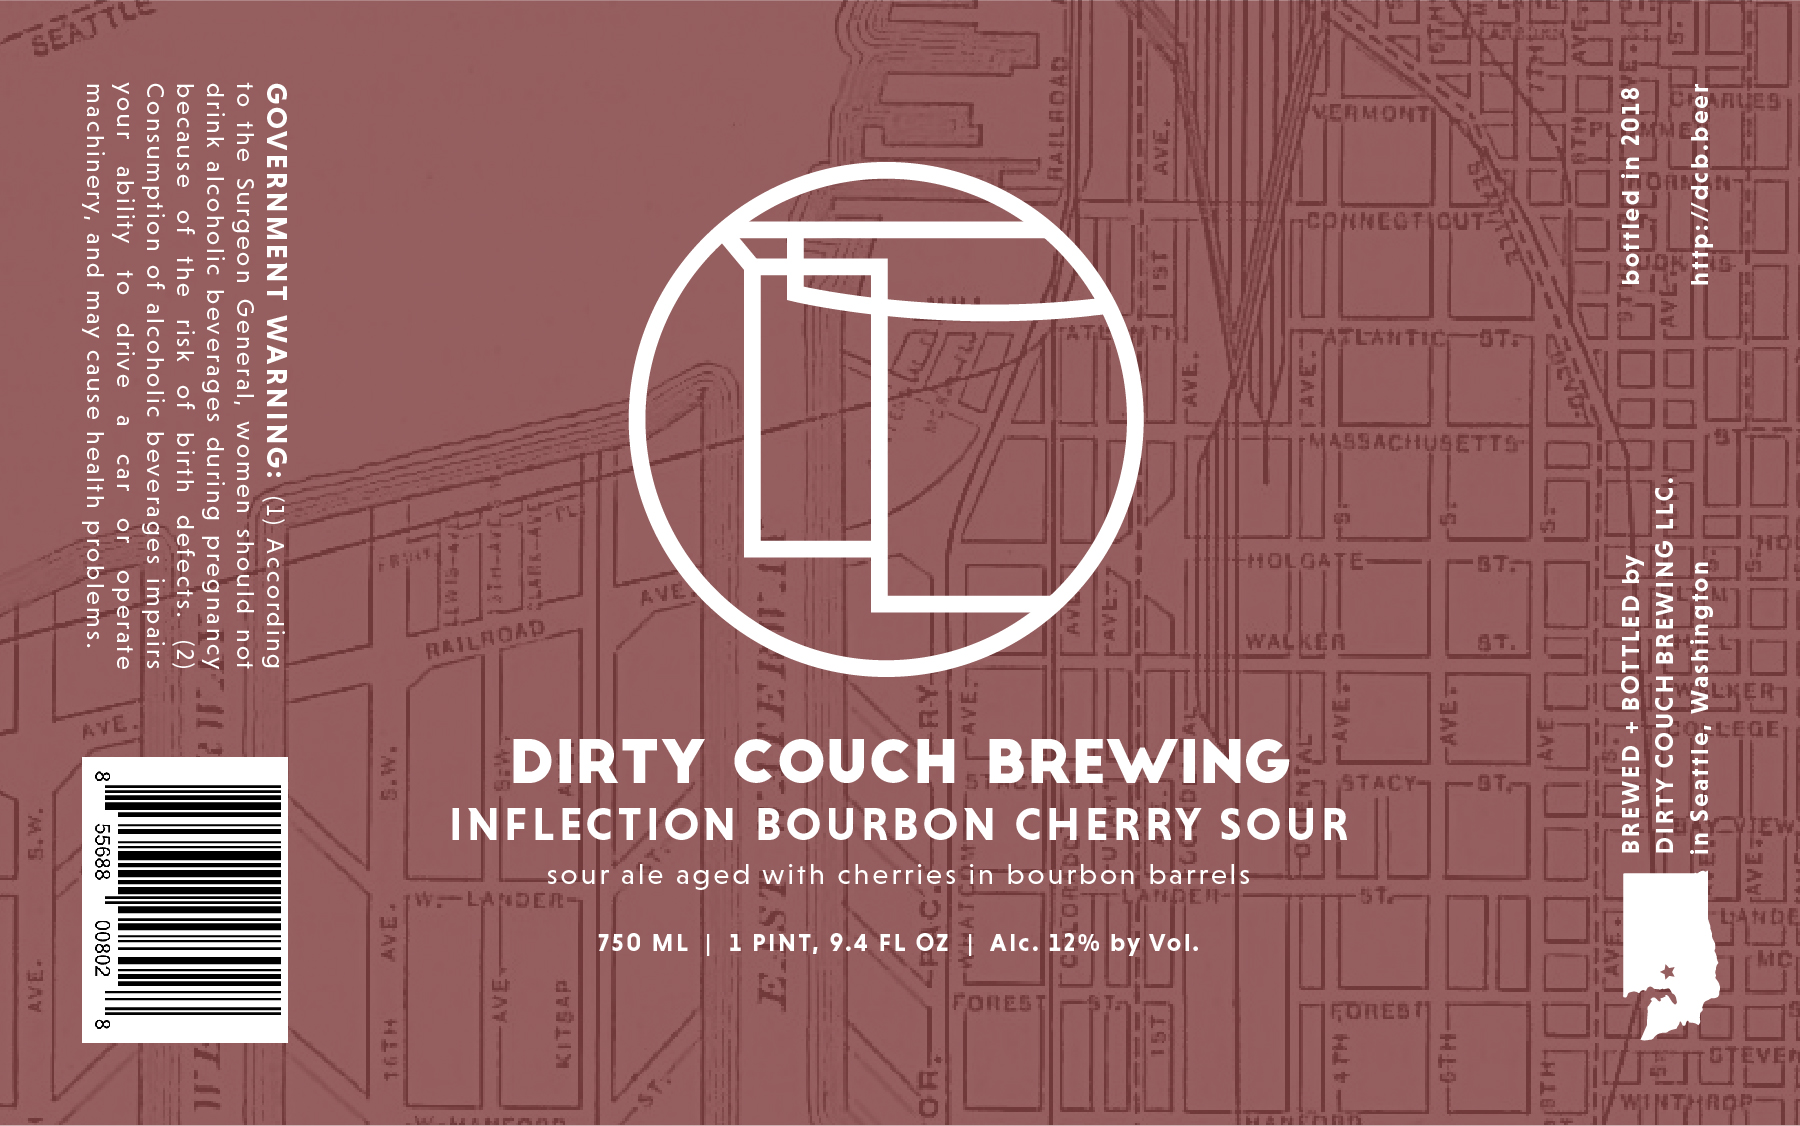 image courtesy Dirty Couch Brewing Company